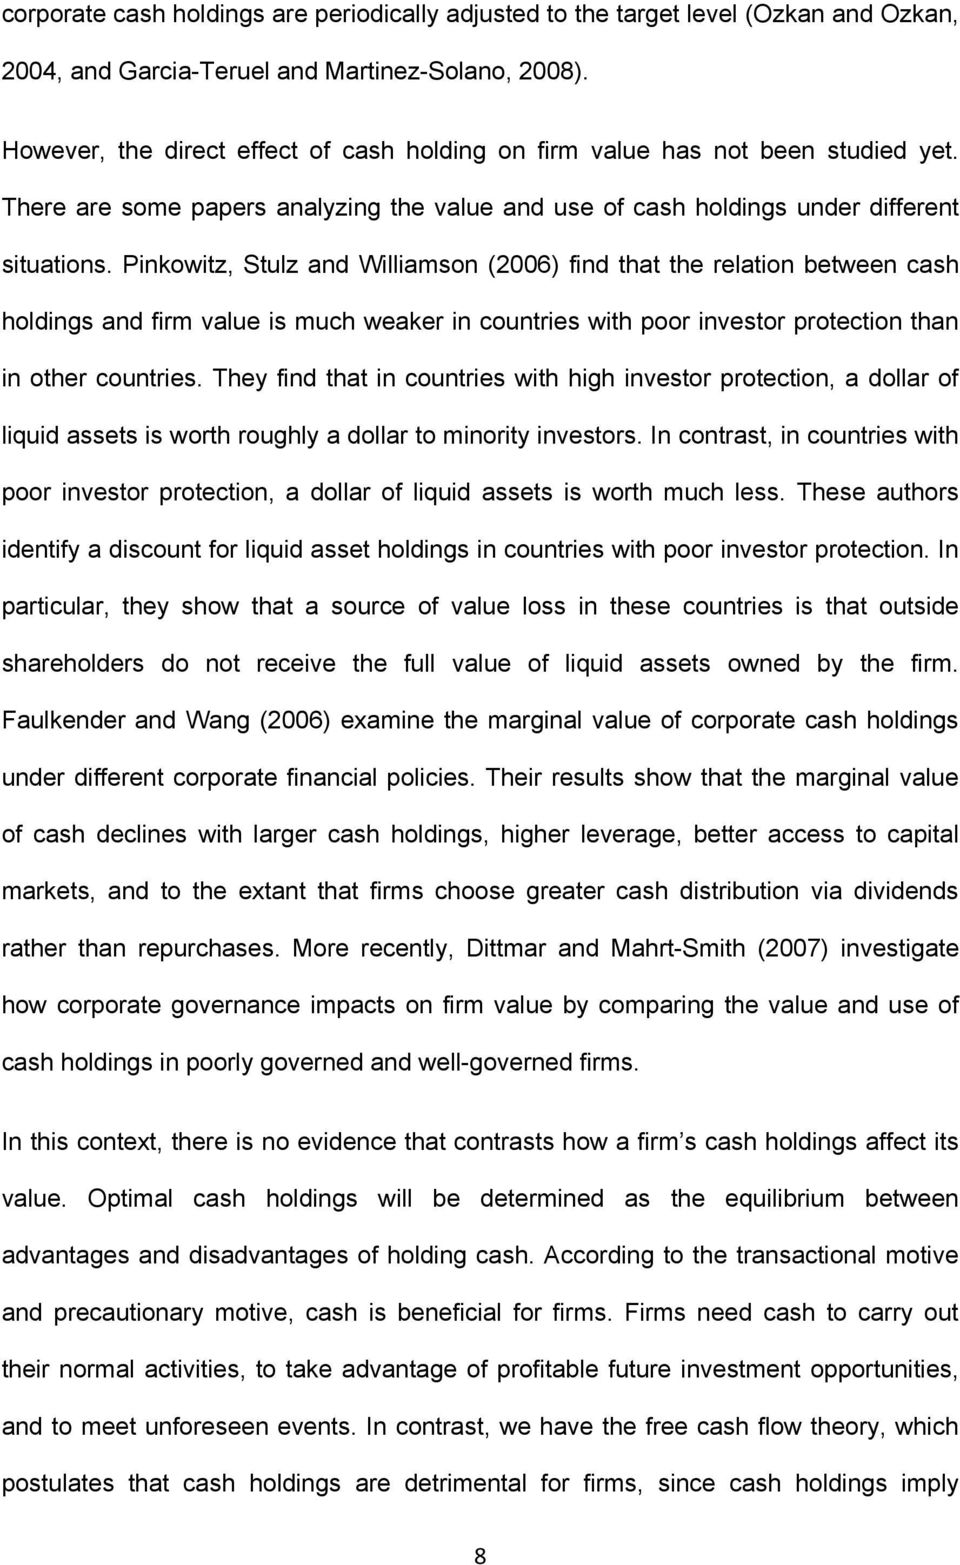 Pinkowitz, Stulz and Williamson (2006) find that the relation between cash holdings and firm value is much weaker in countries with poor investor protection than in other countries.